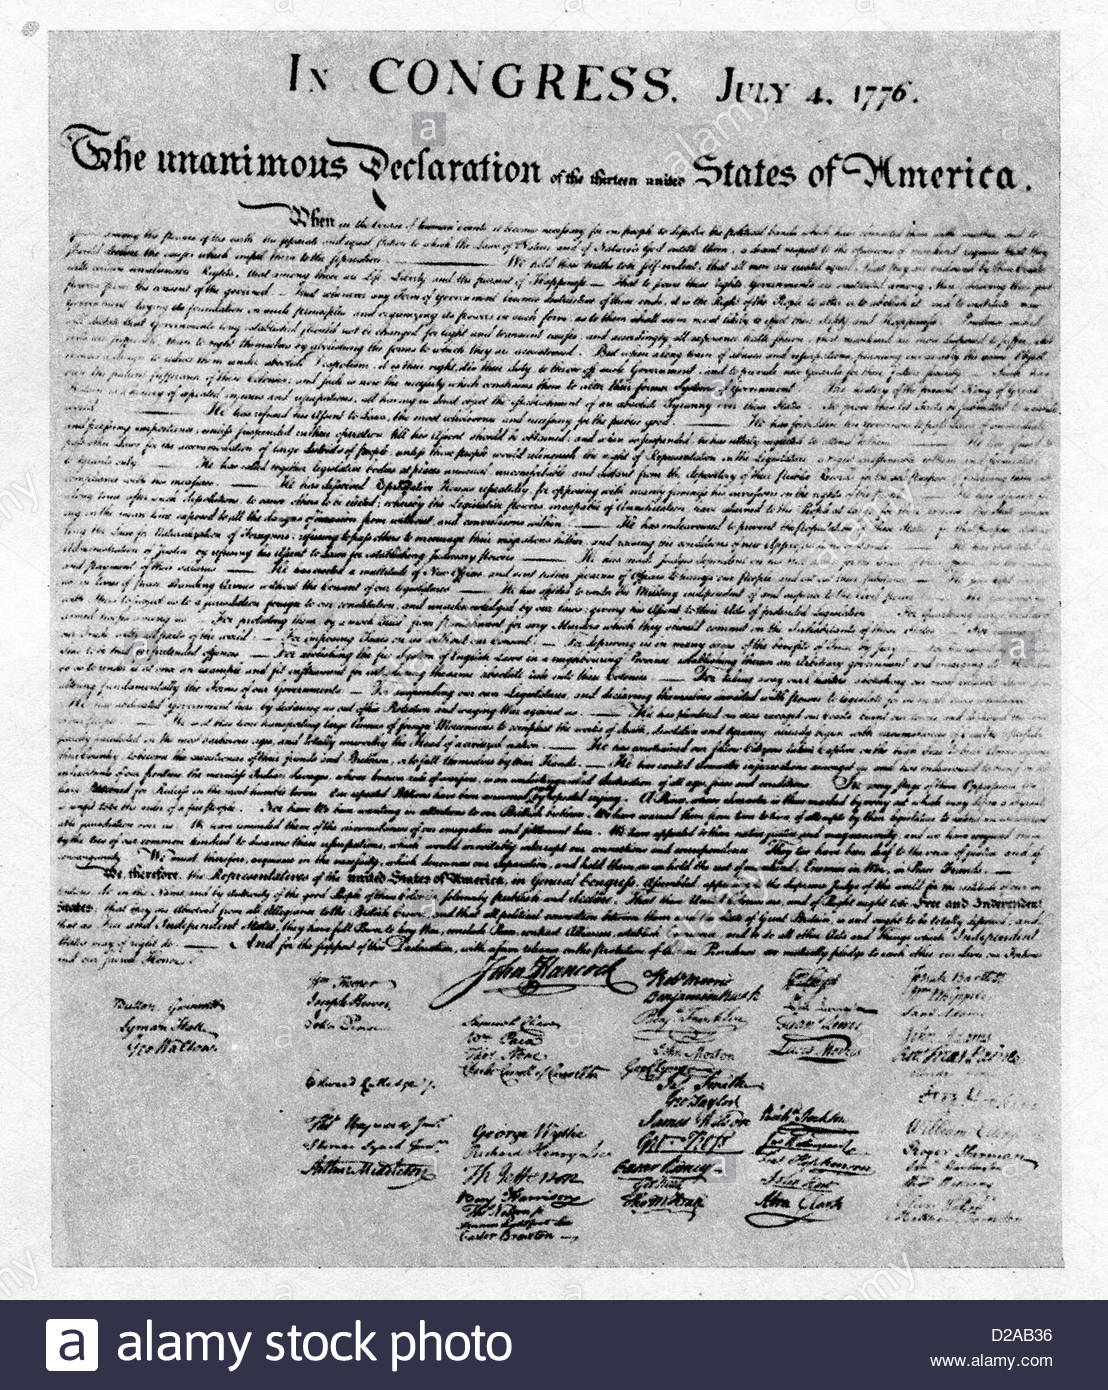 Transcript of Declaration of Independence (Final)